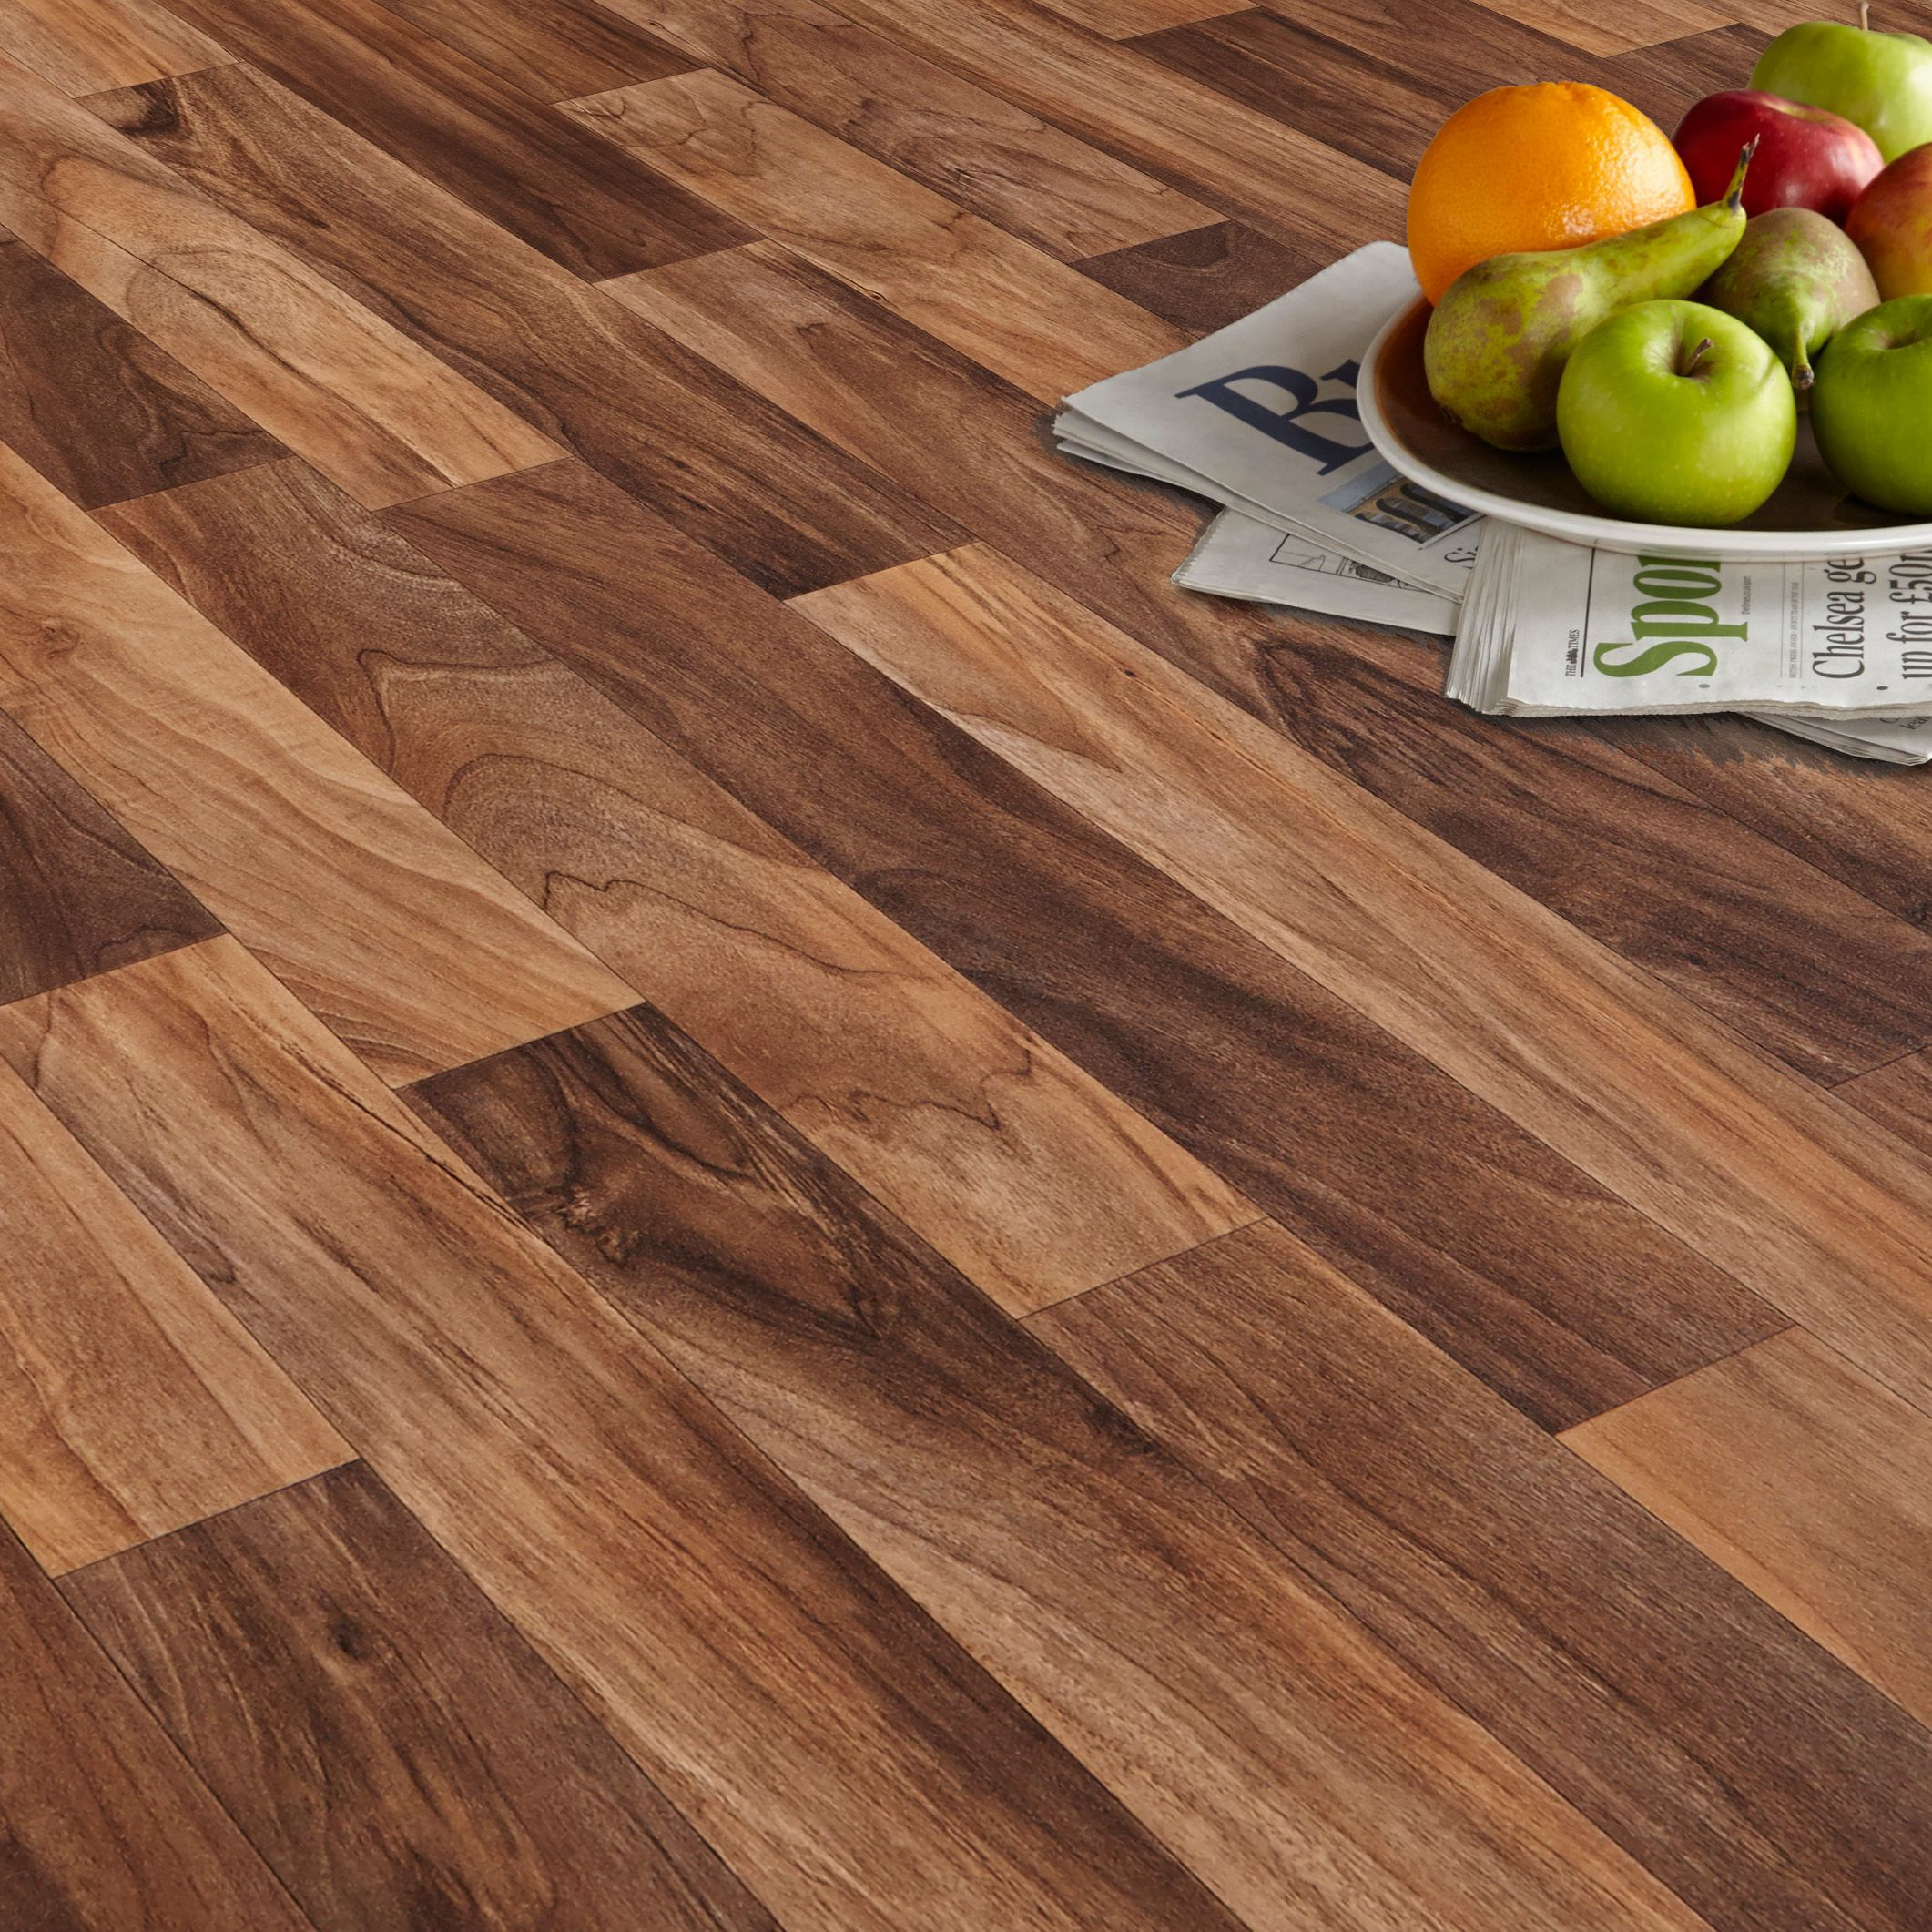 finger vinyl x to impressions wood pattern zoom super home products block floor flooring click